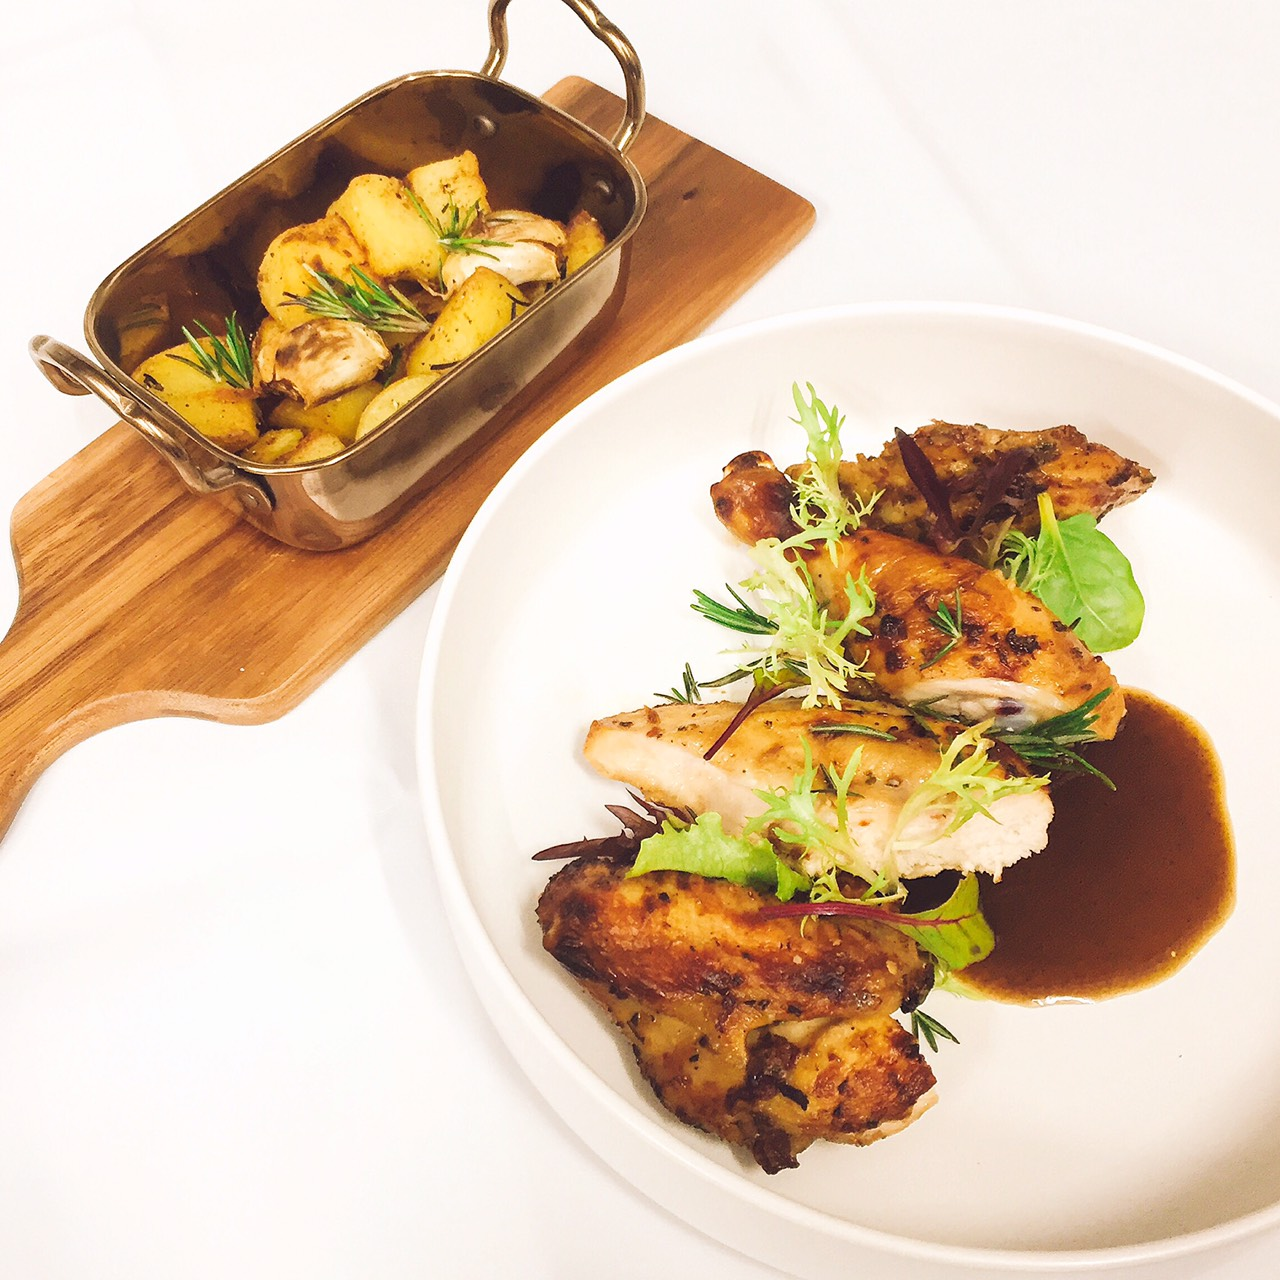 POLLO ARROSTO | Slow-roasted sun dried tomatoes and rosemary marinated baby chicken with roasted veggies